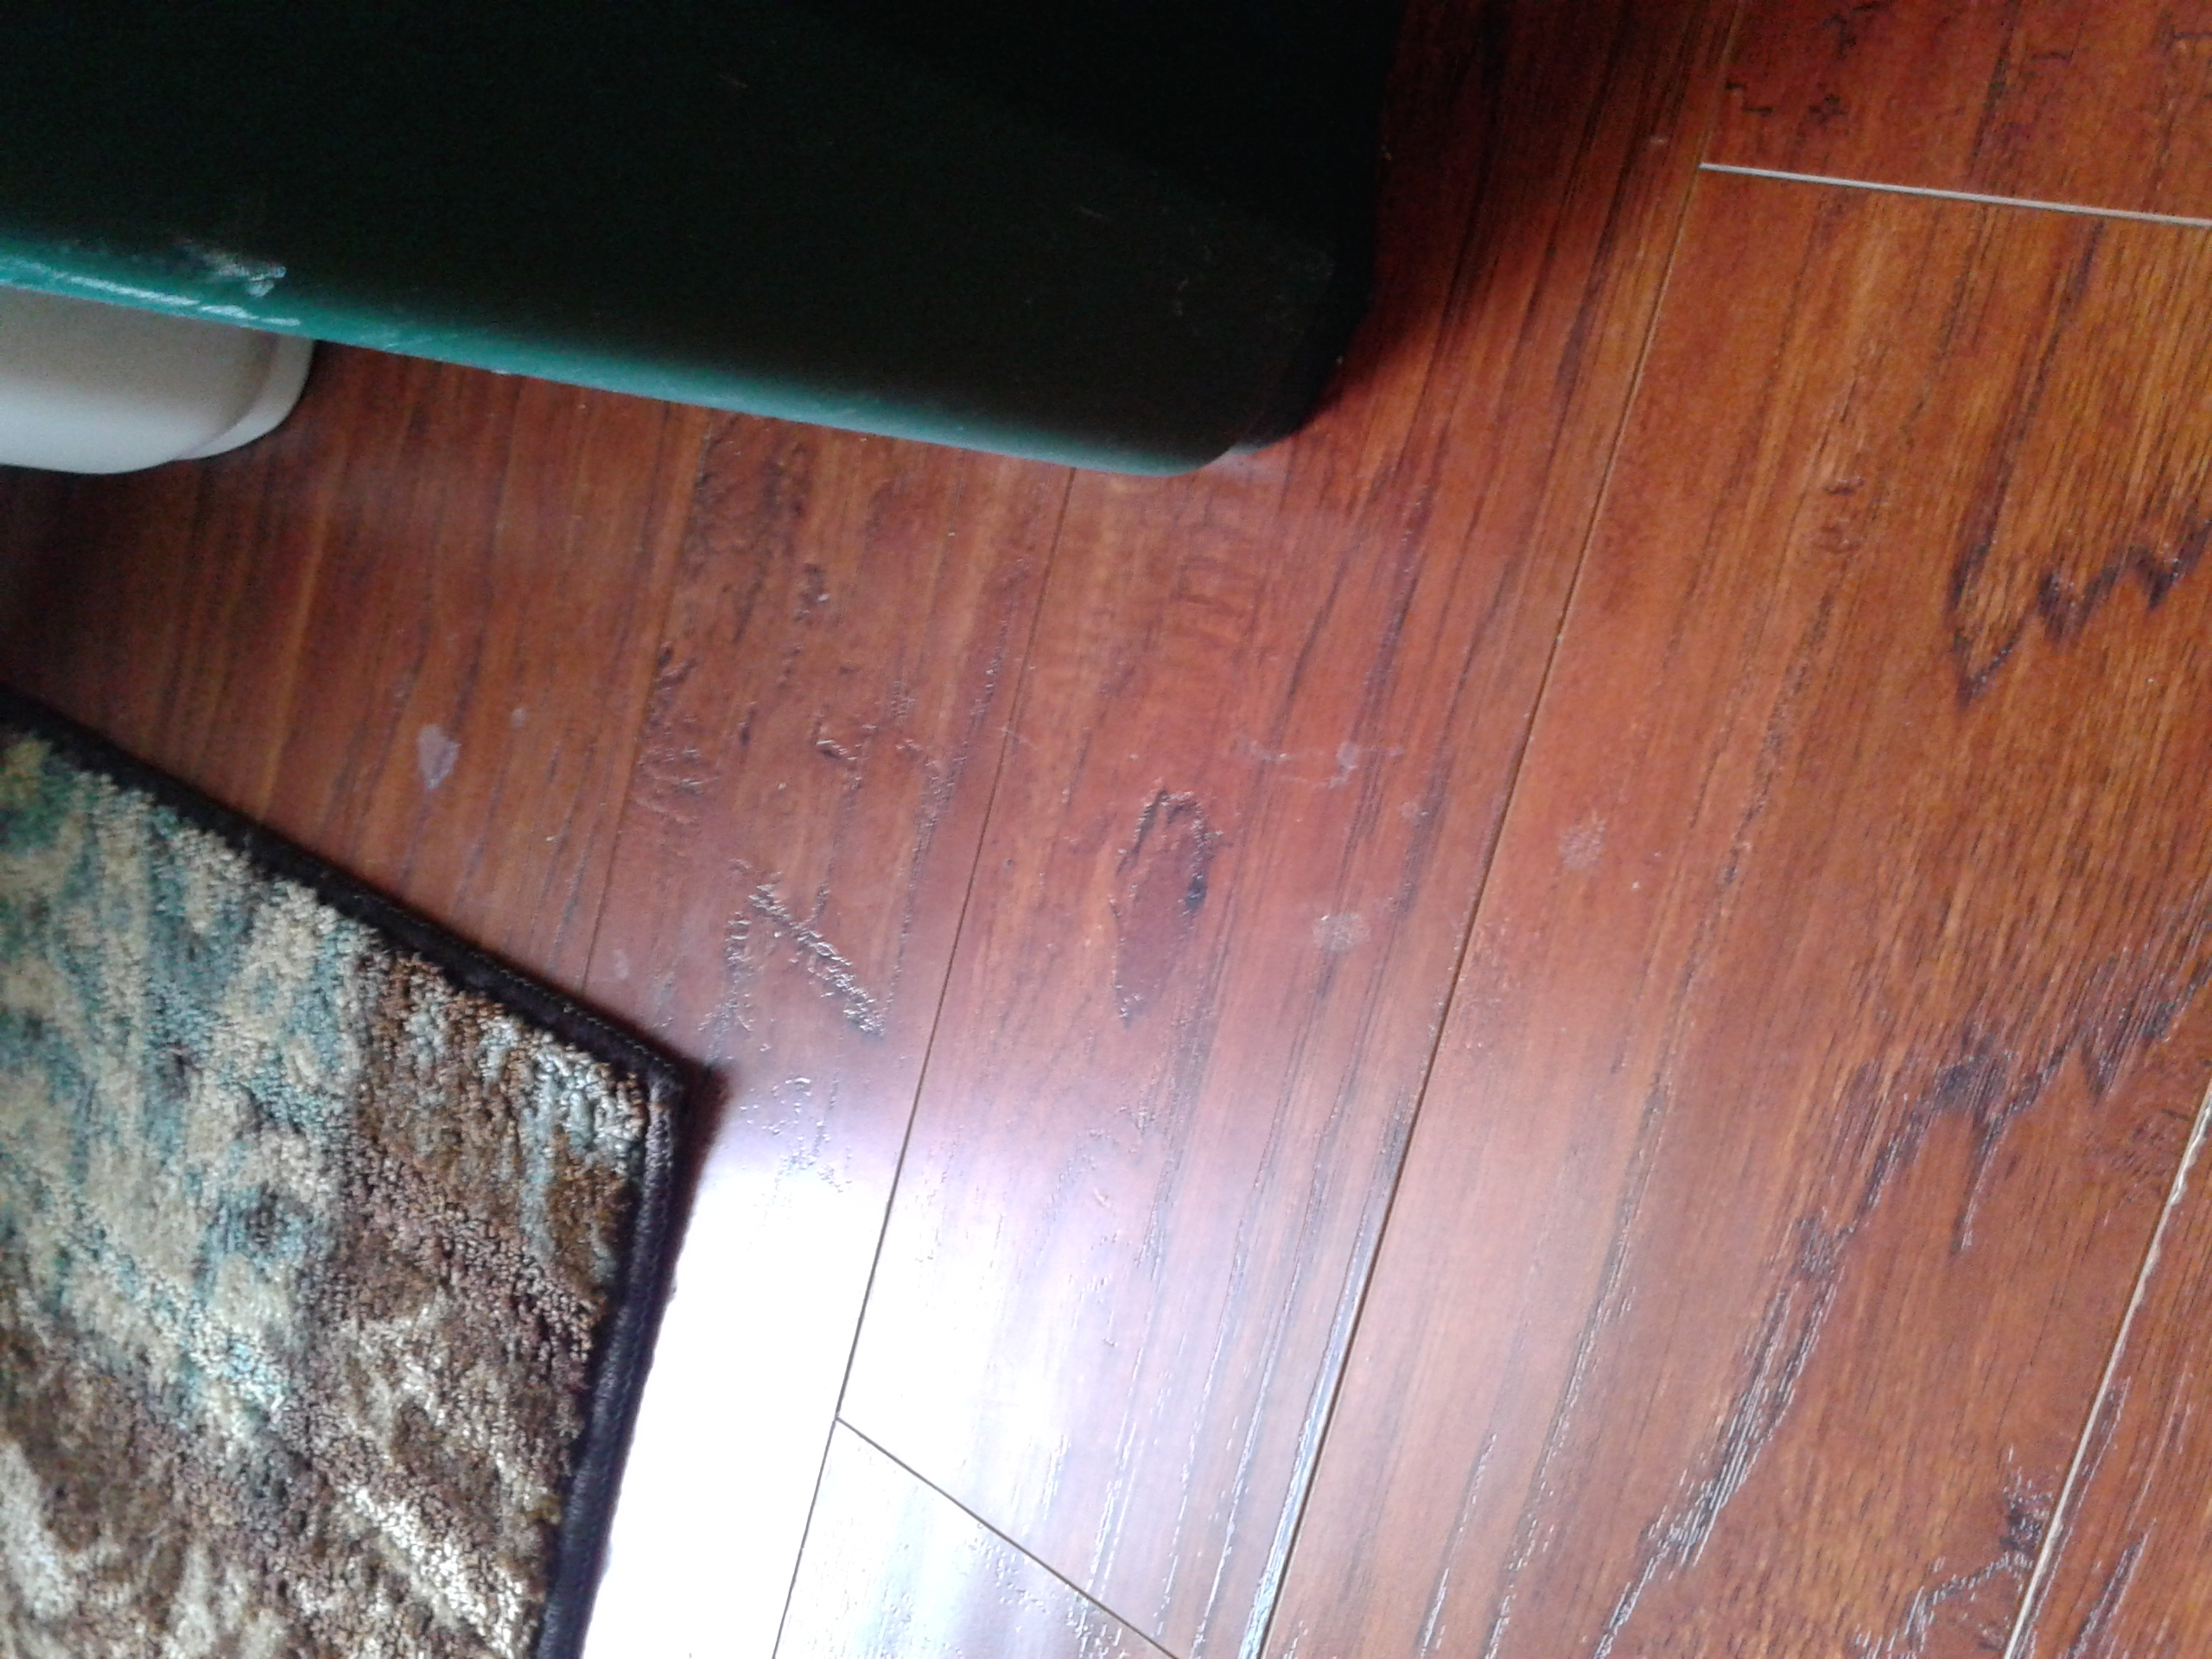 The Best Way To Clean Hardwood Floors It S Also The